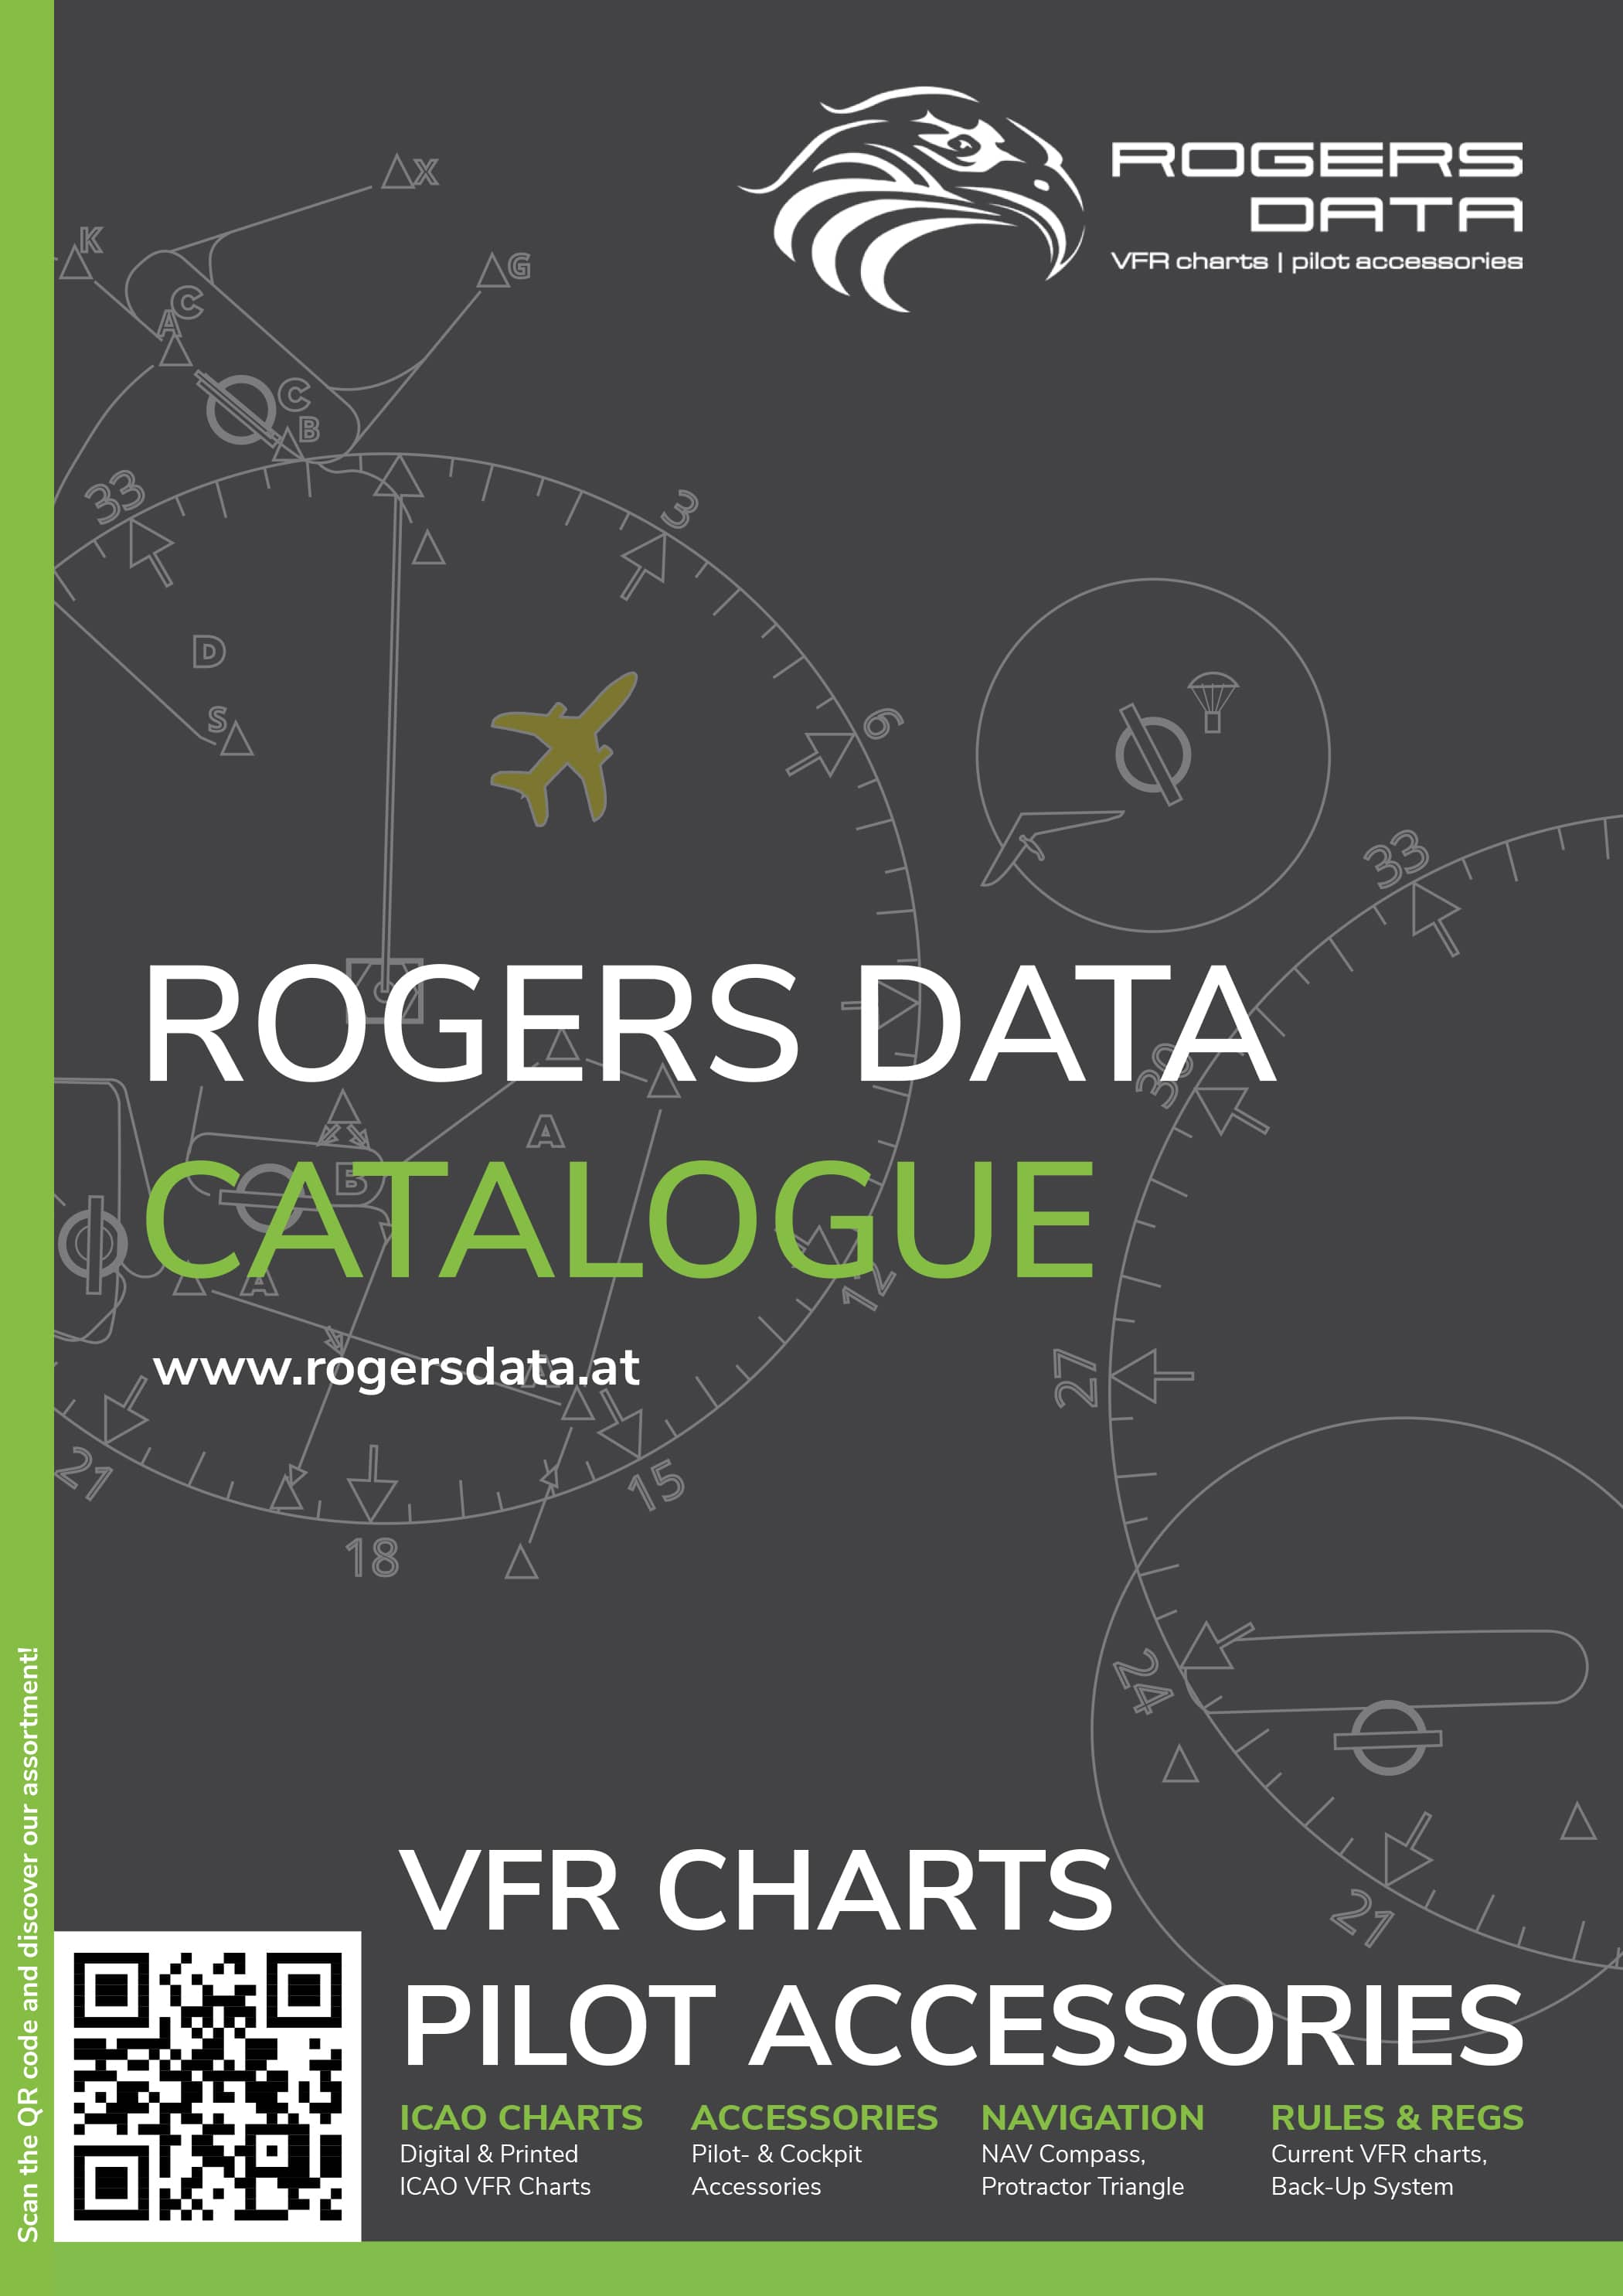 Rogers Data Product Catalogue 2021